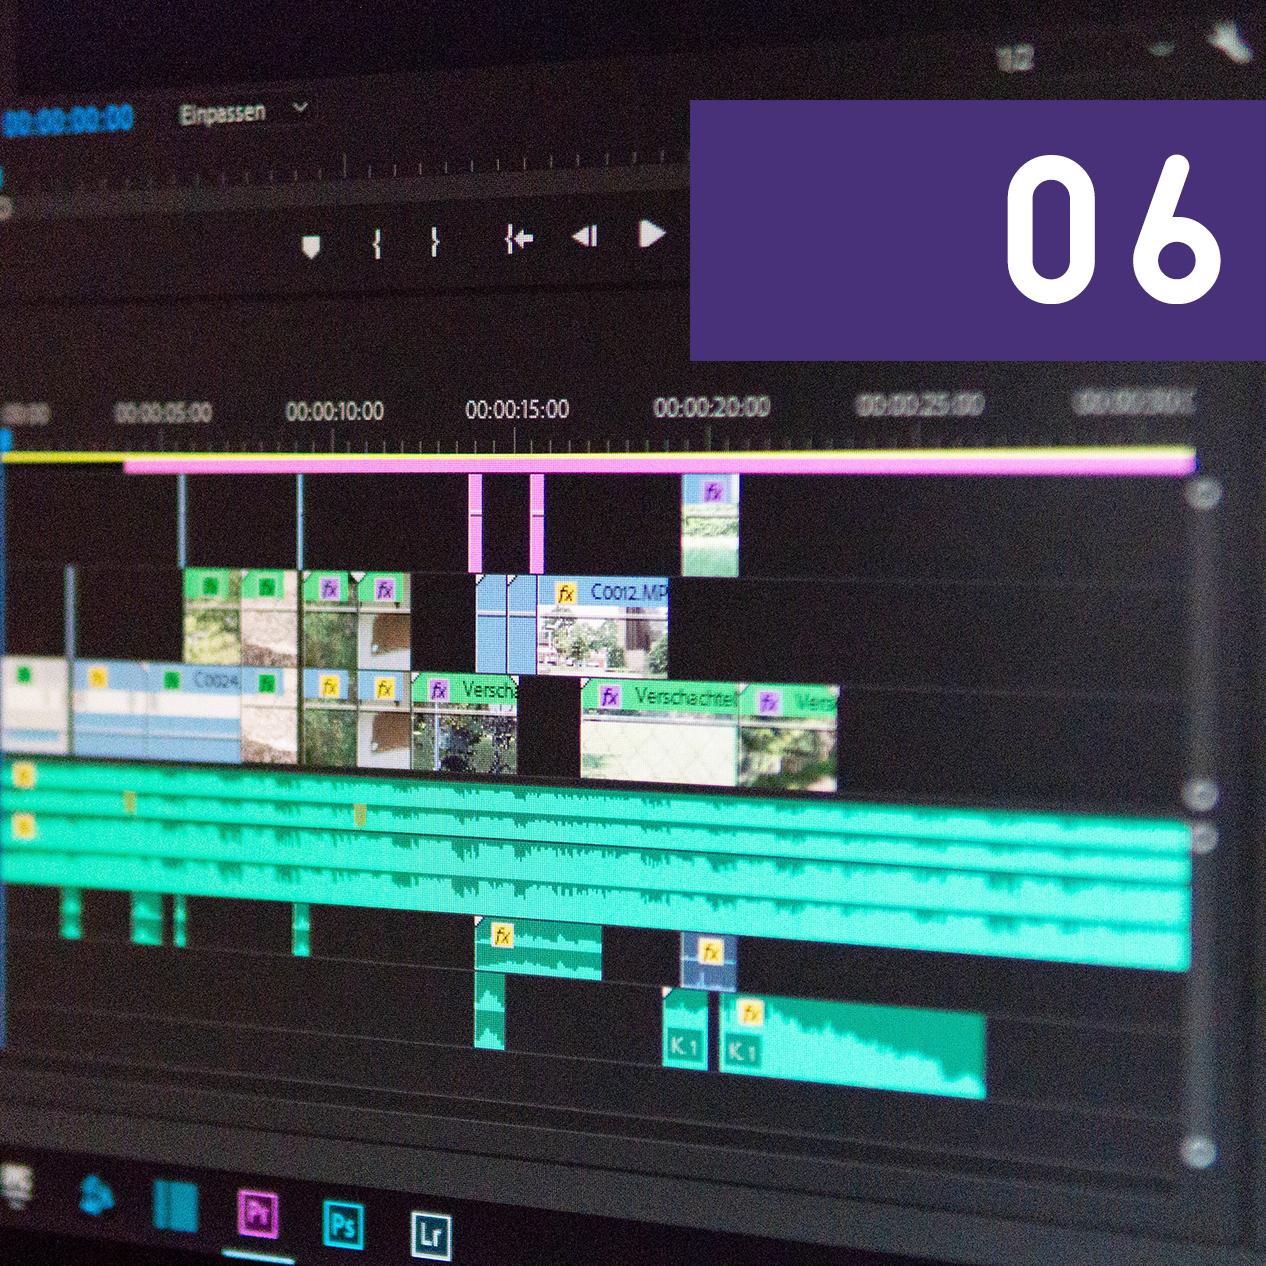 Post-Production - Editing brings all the pieces of the filmmaking process together like a jigsaw puzzle. Students will learn how to cut a sequence, create transitions between multiple sequences and add titles and credits to cottage in order to piece the production together into a finished short film.